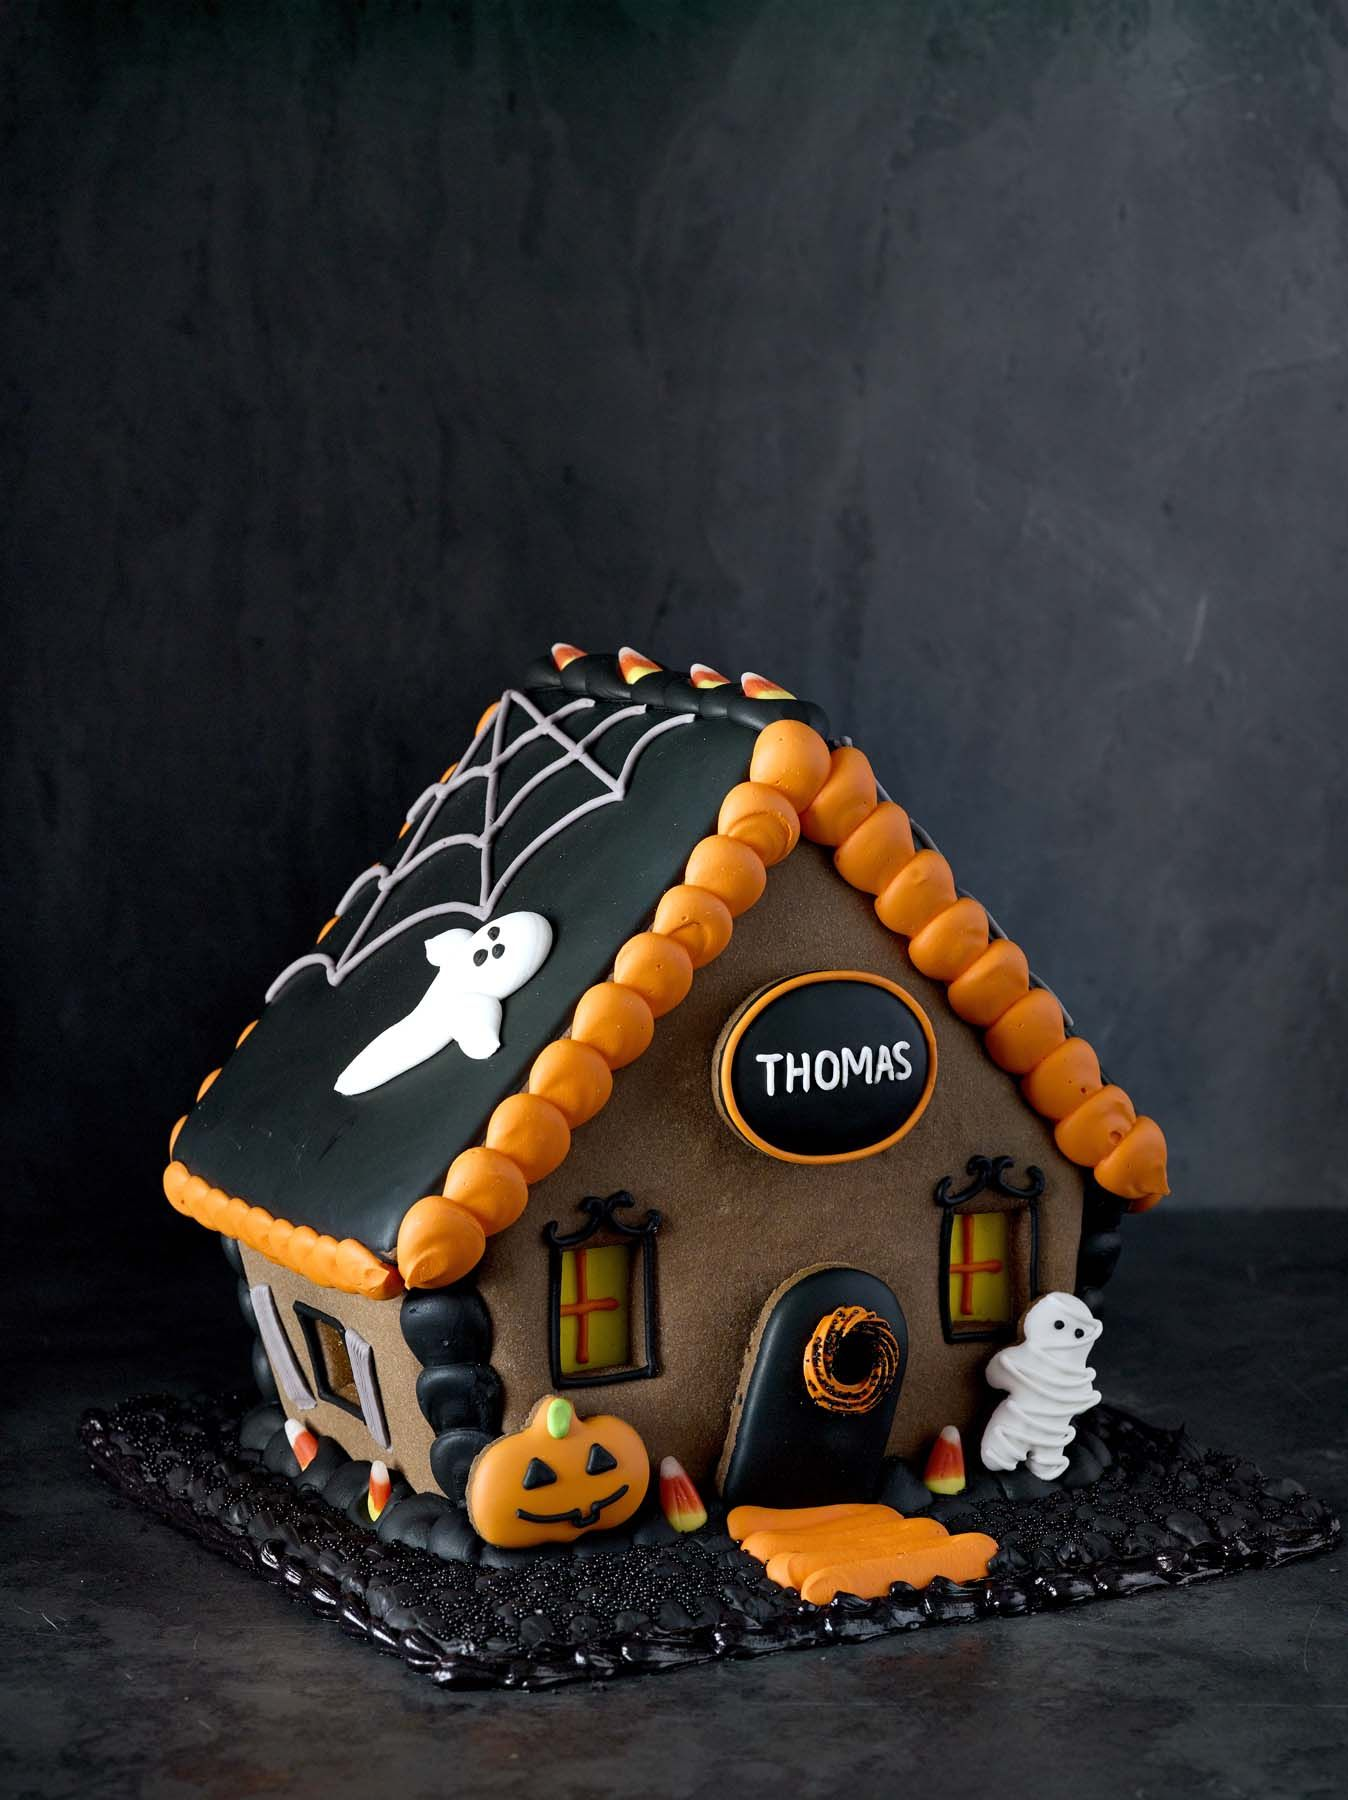 Halloween Gingerbread House | Happy Halloween! | Pinterest ... on haunted house moon, simple spooky house, inflatable haunted house, the scariest most haunted house, haunted irish houses, haunted houses in alabama, haunted houses in texas, haunted turkey house, the scarehouse haunted house, haunted gingerbread tree, fun spot orlando haunted house, ghostly manor haunted house, haunted house blank template, haunted winter house, animated haunted house, haunted victorian houses, raymond hill mortuary haunted house, cartoon haunted house, haunted cookie house, haunted family house,